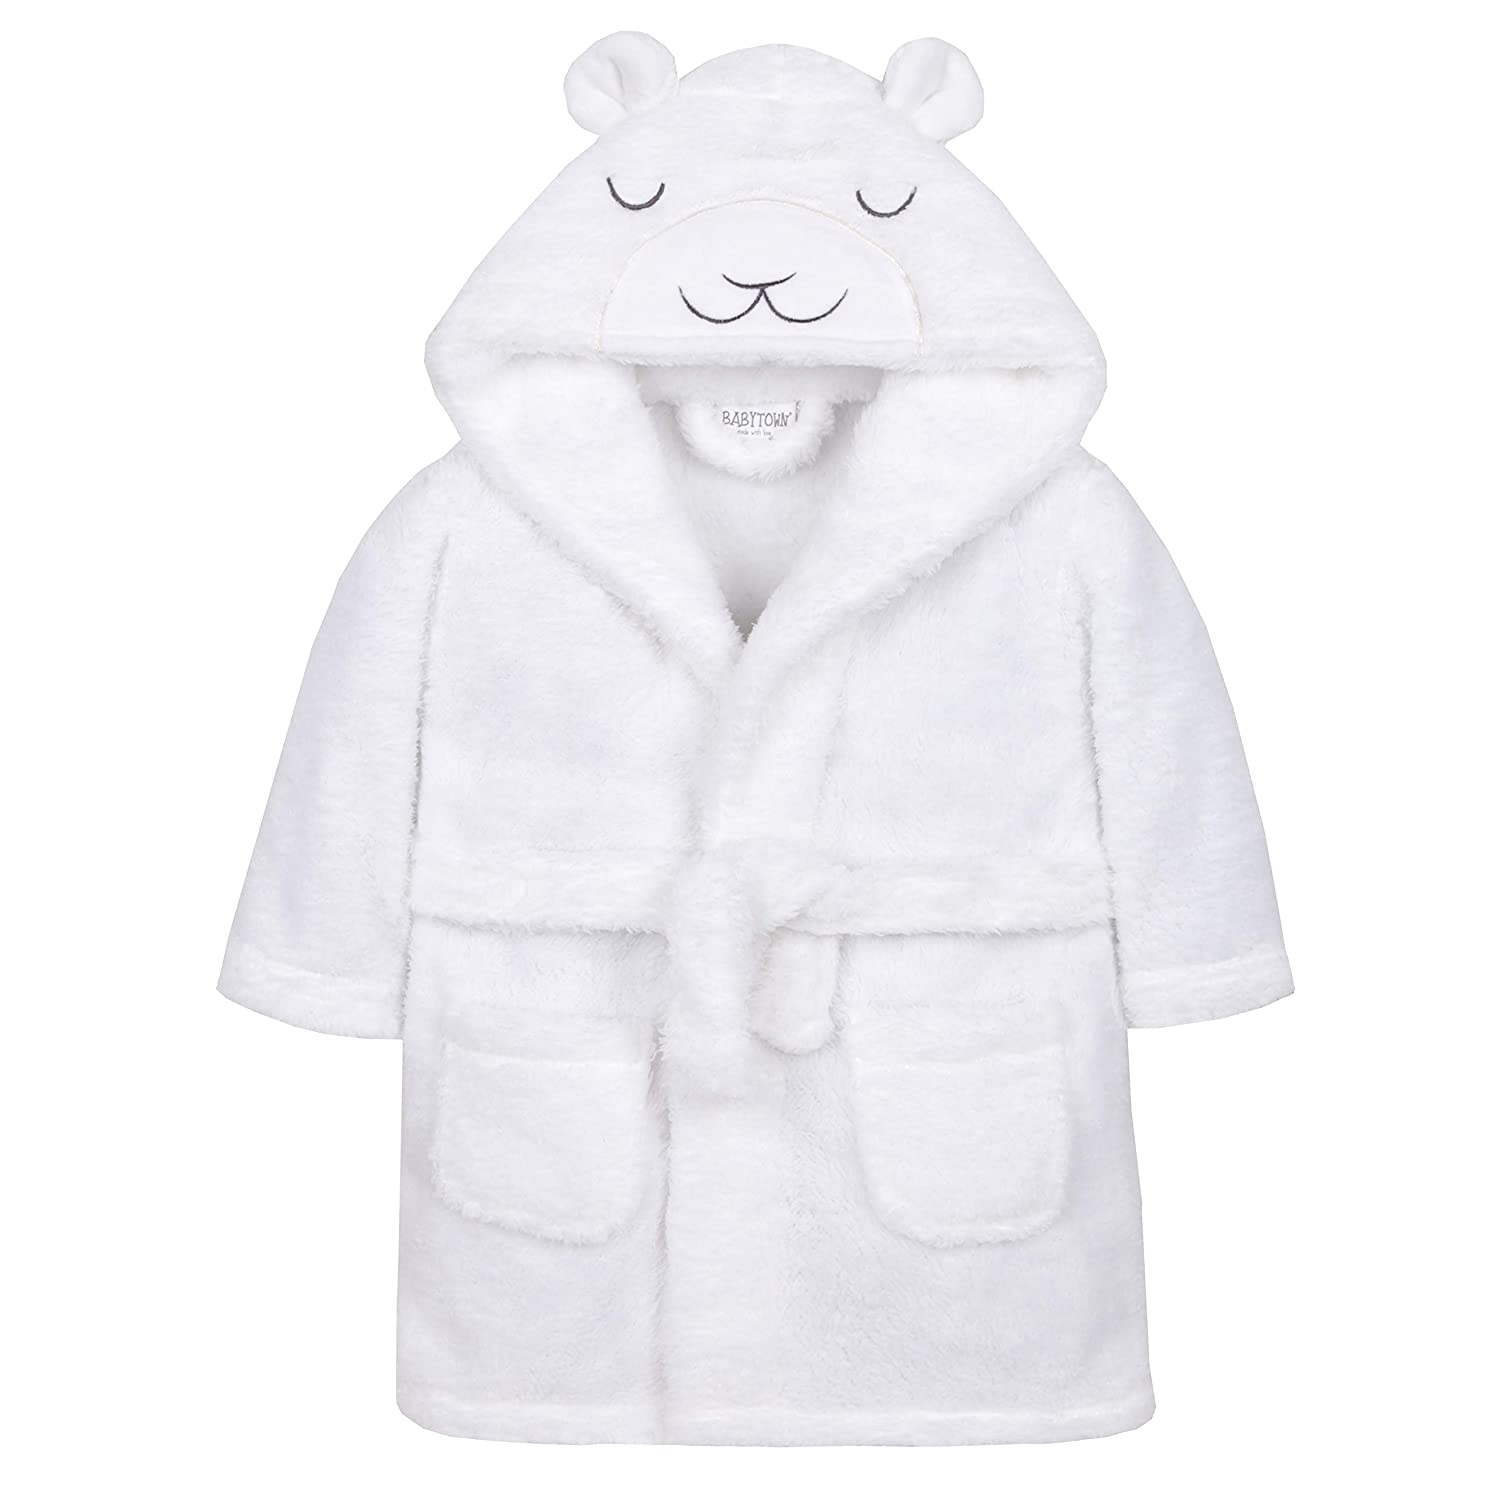 Metzuyan Baby Boys & Girls Lamb Novelty Hooded Dressing Gown